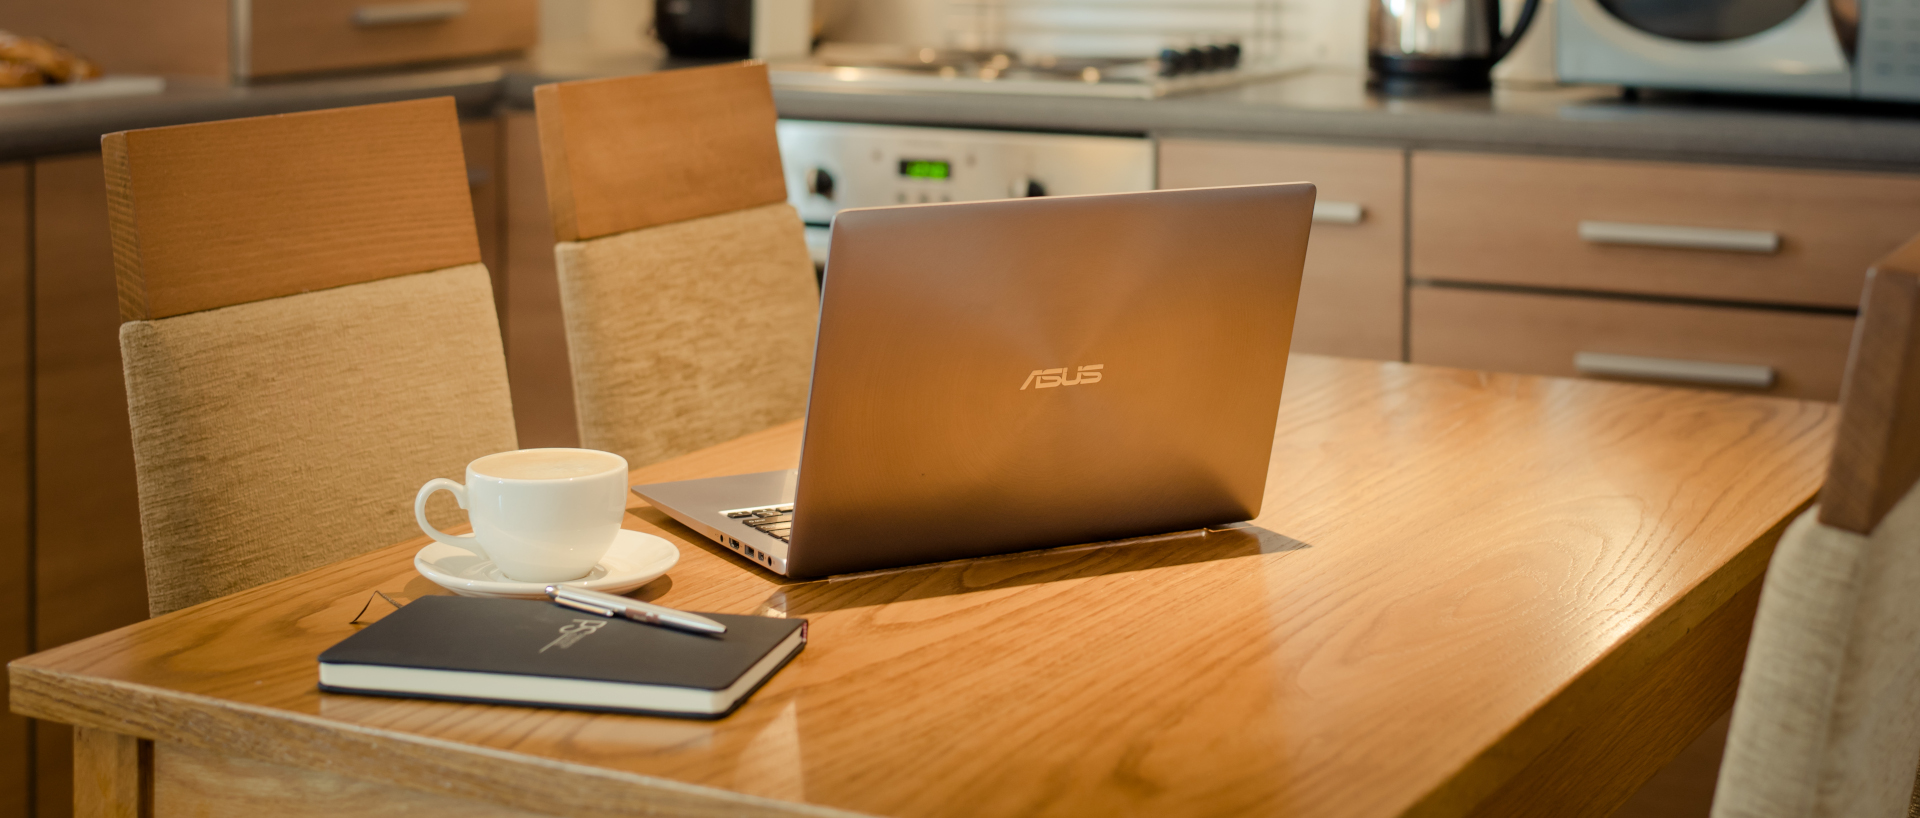 A corporate guests laptop on the kitchen table in PREMIER SUITES Newcastle serviced apartments